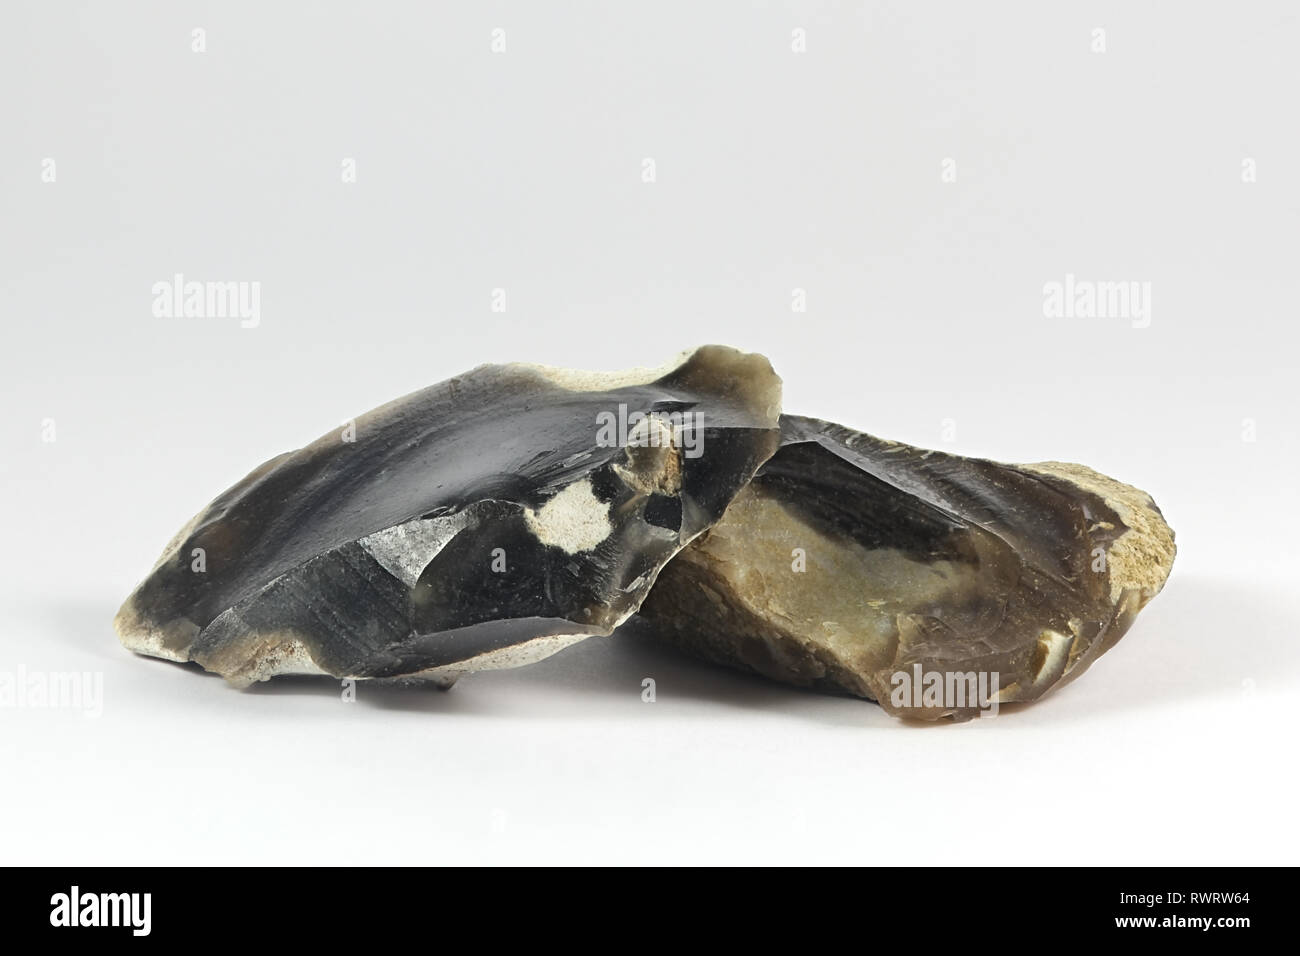 Volcanic Glass Stock Photos & Volcanic Glass Stock Images - Alamy